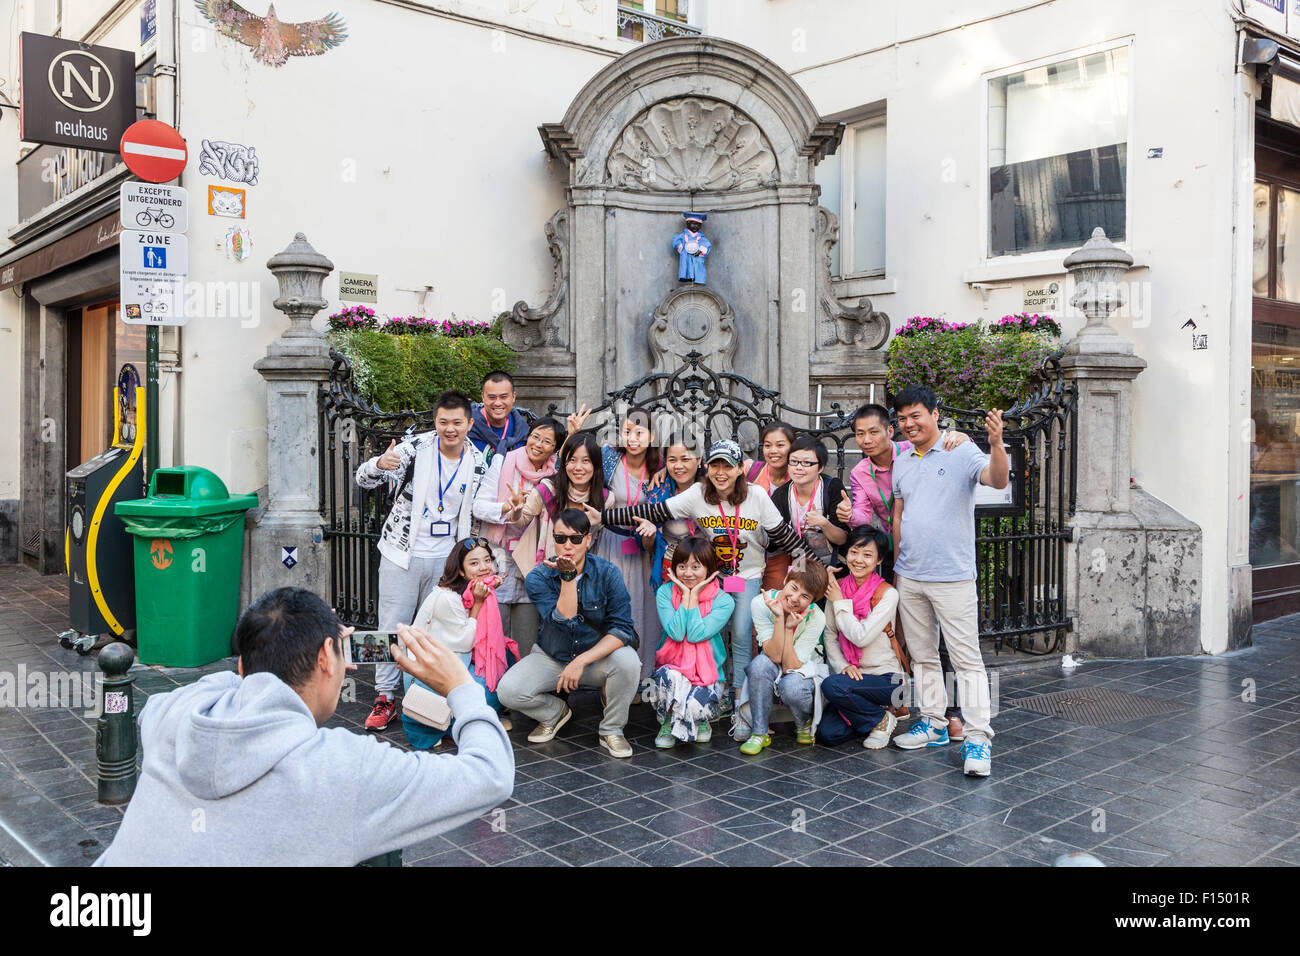 BRUSSELS, BELGIUM - AUG 22: Chinese tourists taking pictures at the Manneken Pis statue in Brussels. August 22, - Stock Image